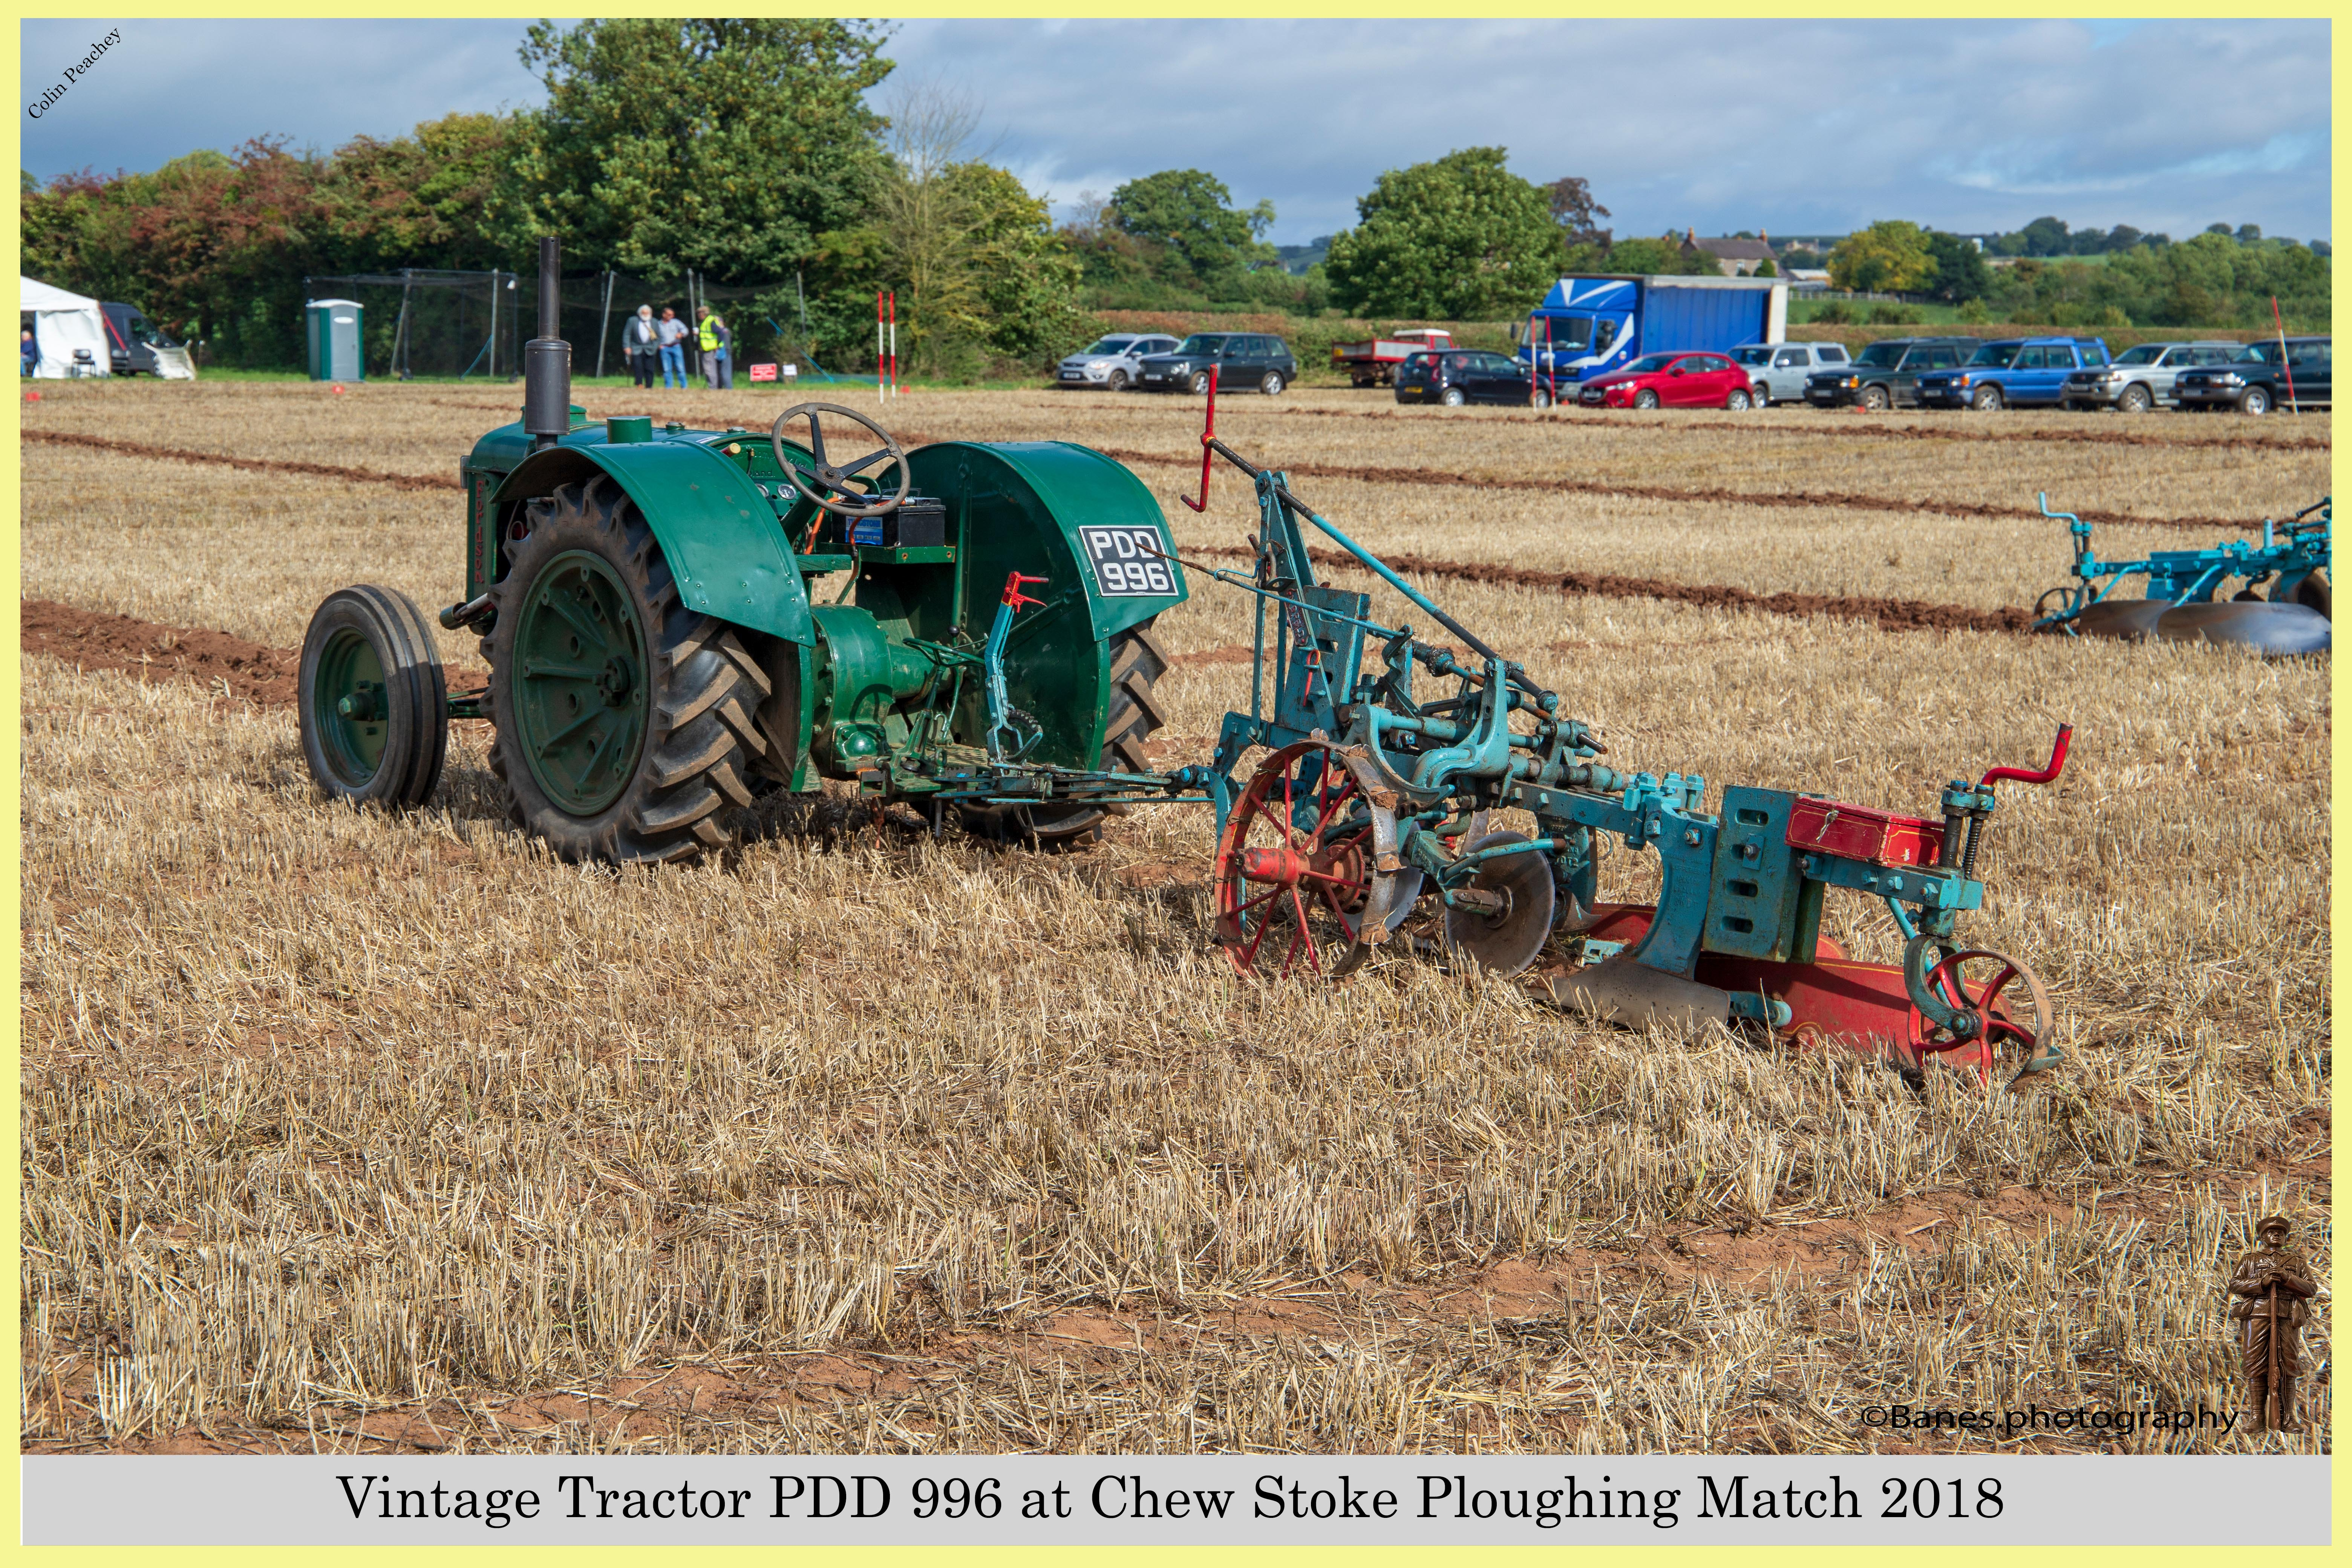 PDD 996 at Chew Stoke Ploughing Match 2018